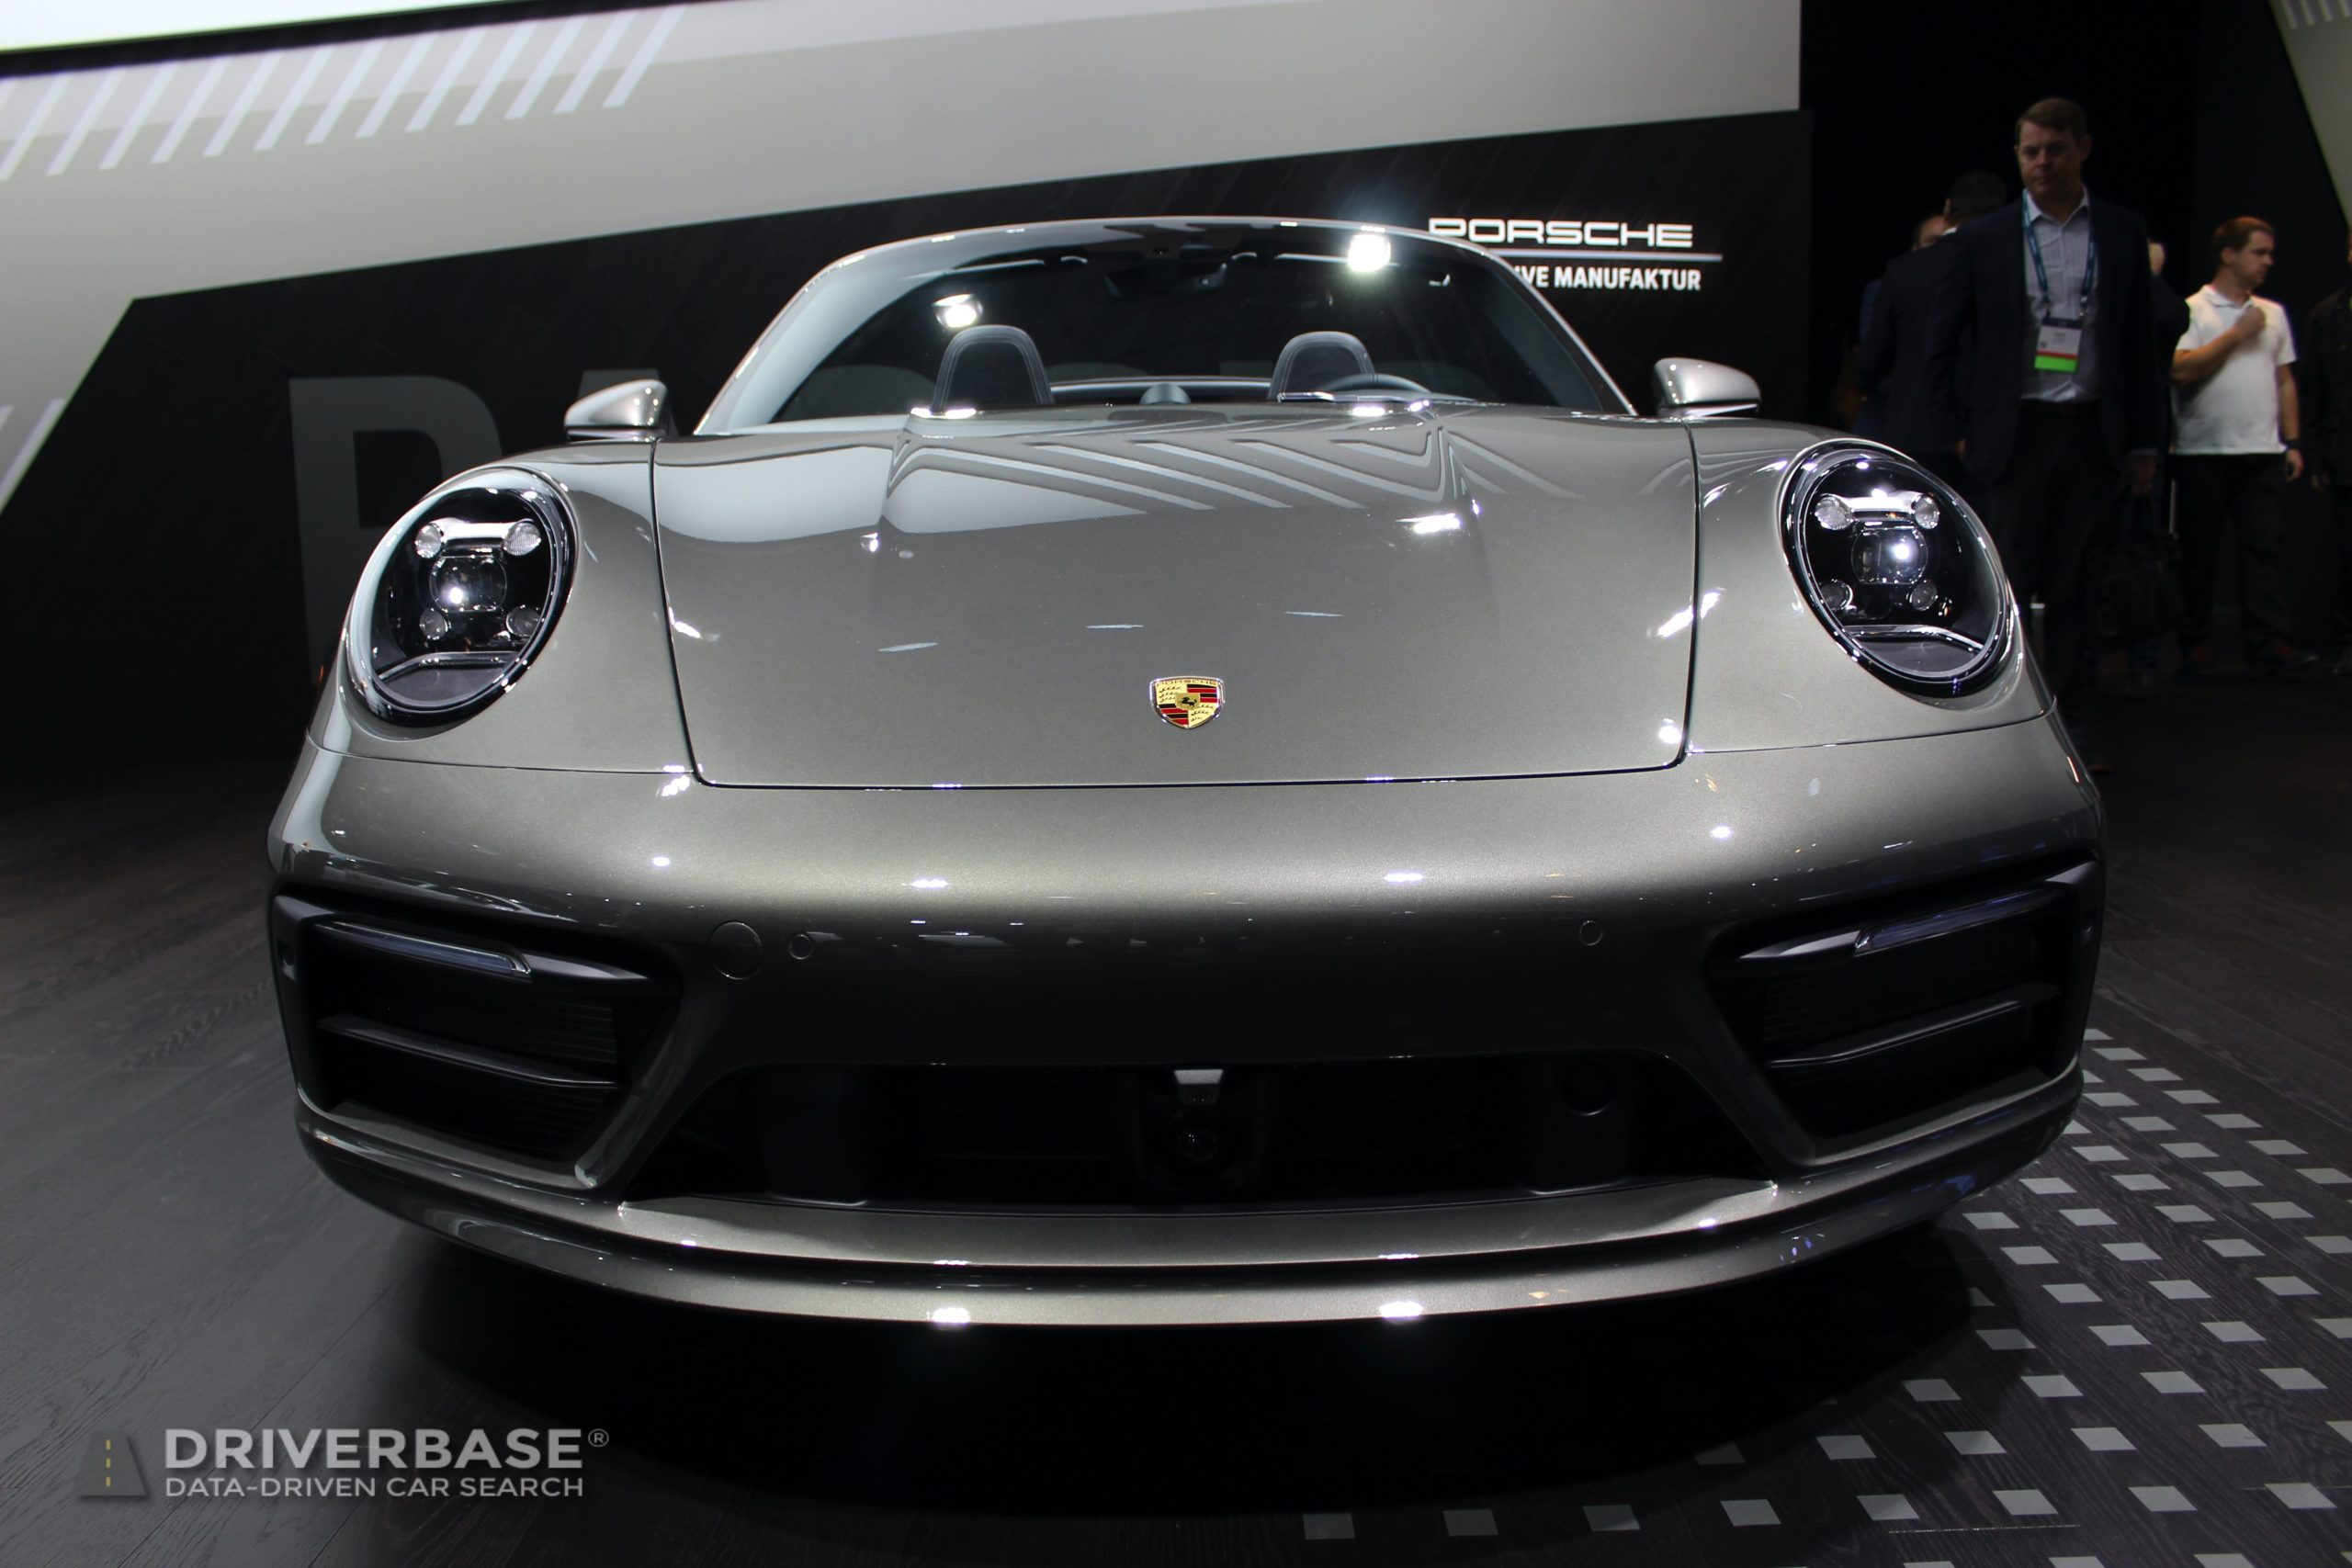 2020 Porsche 911 Carrera 4S at the 2019 Los Angeles Auto Show